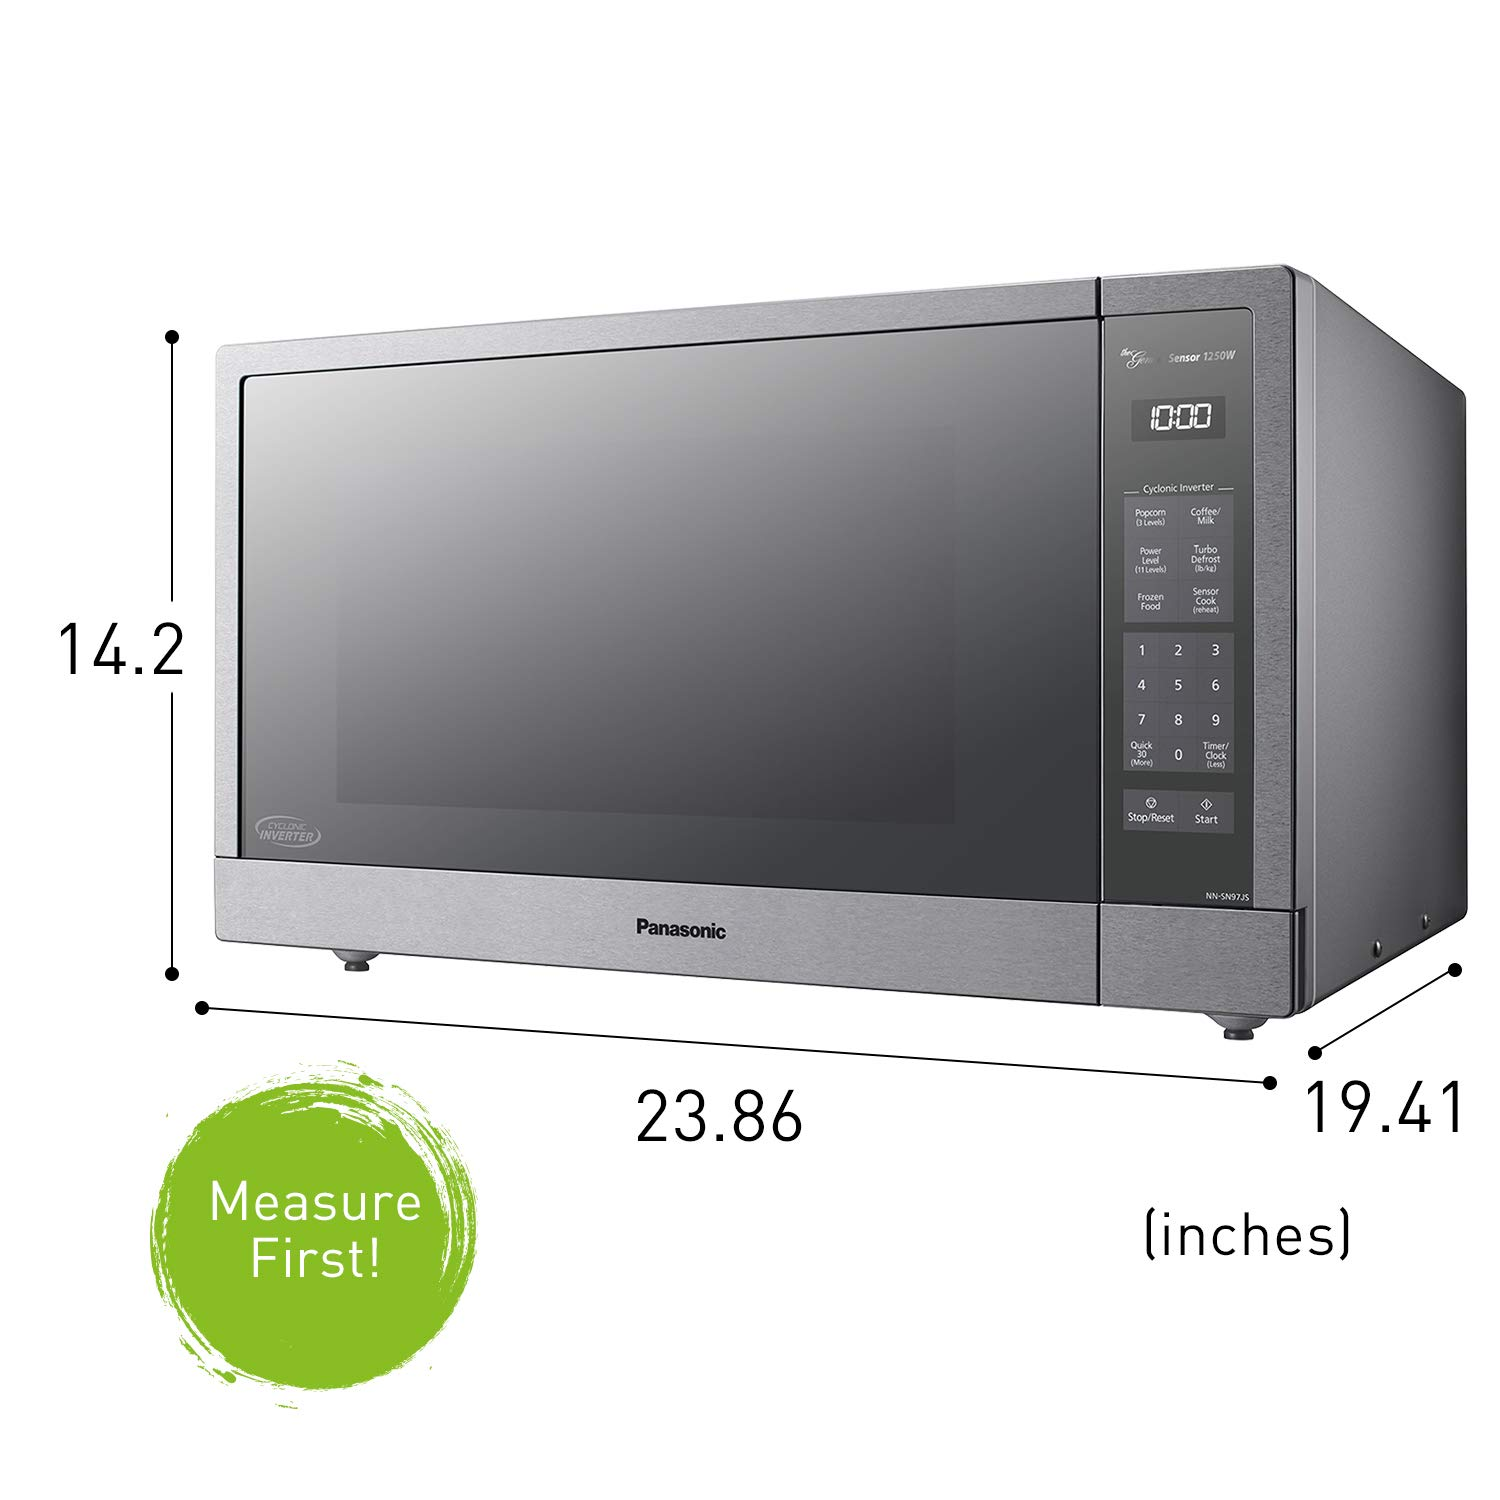 Panasonic Microwave Oven, Stainless Steel Countertop/Built-In Cyclonic Wave with Inverter Technology and Genius Sensor, 2.2 Cu. Ft, 1250W, NN-SN97JS (Silver) by Panasonic (Image #6)